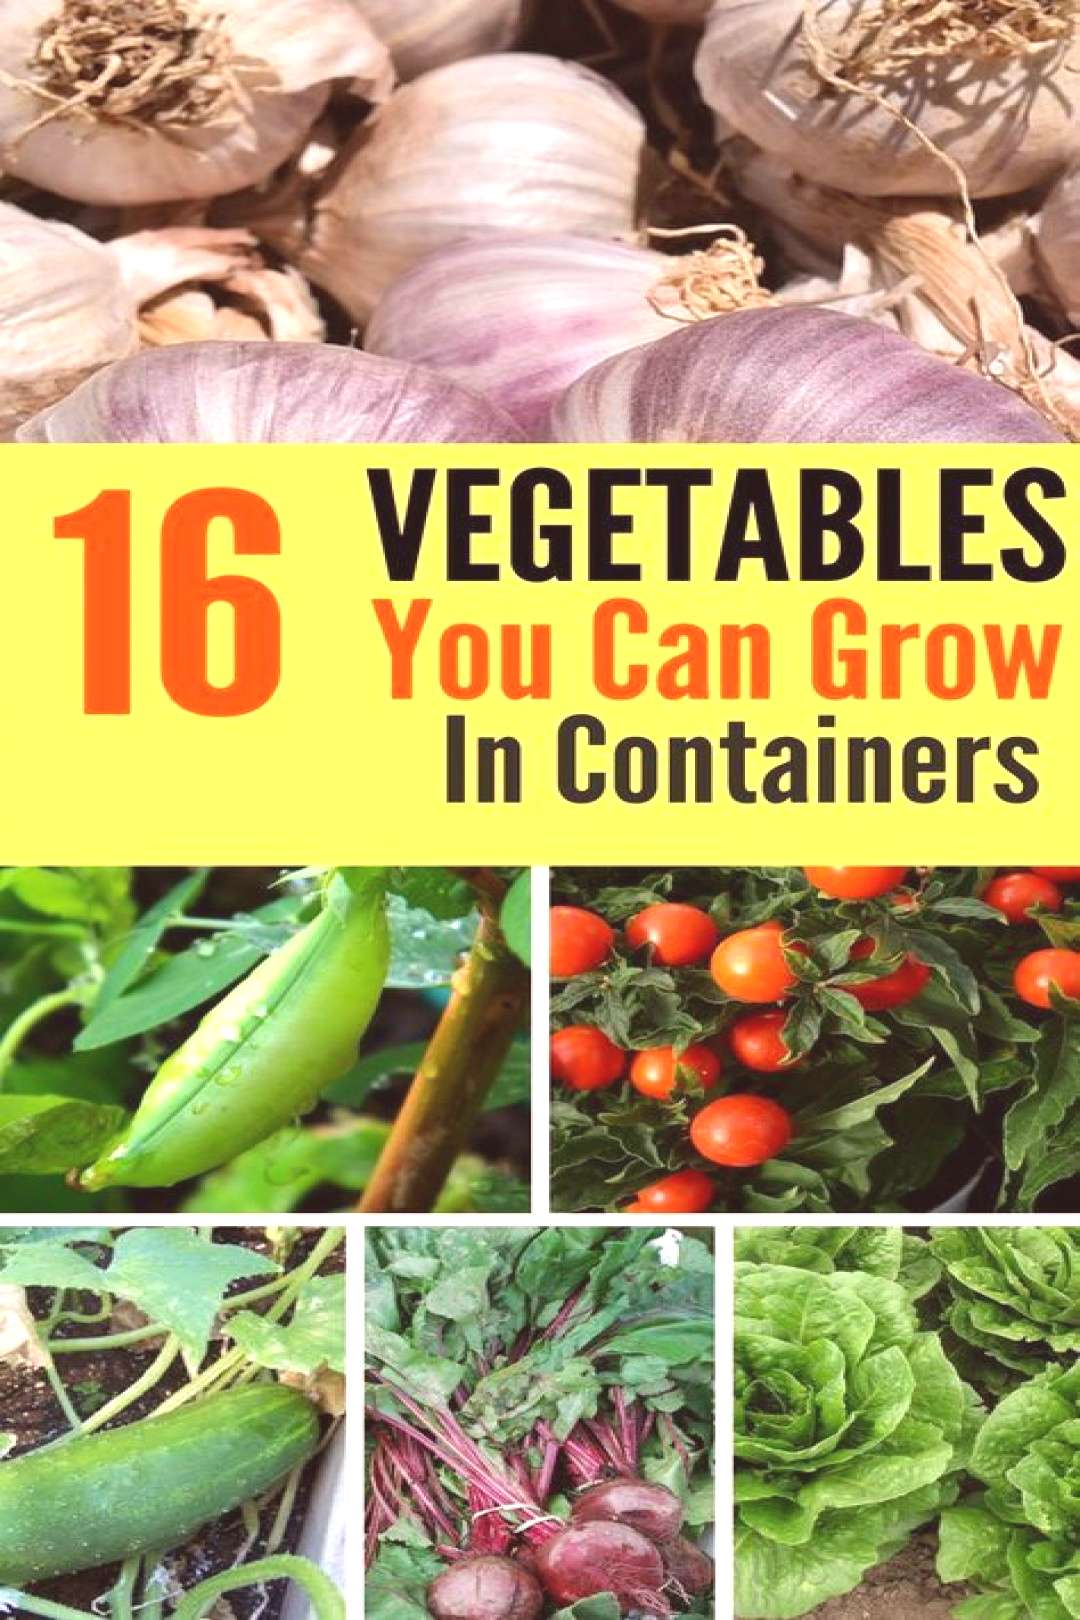 Try your hand at container gardening with these 16 delicious vegetables that are perfect for growin